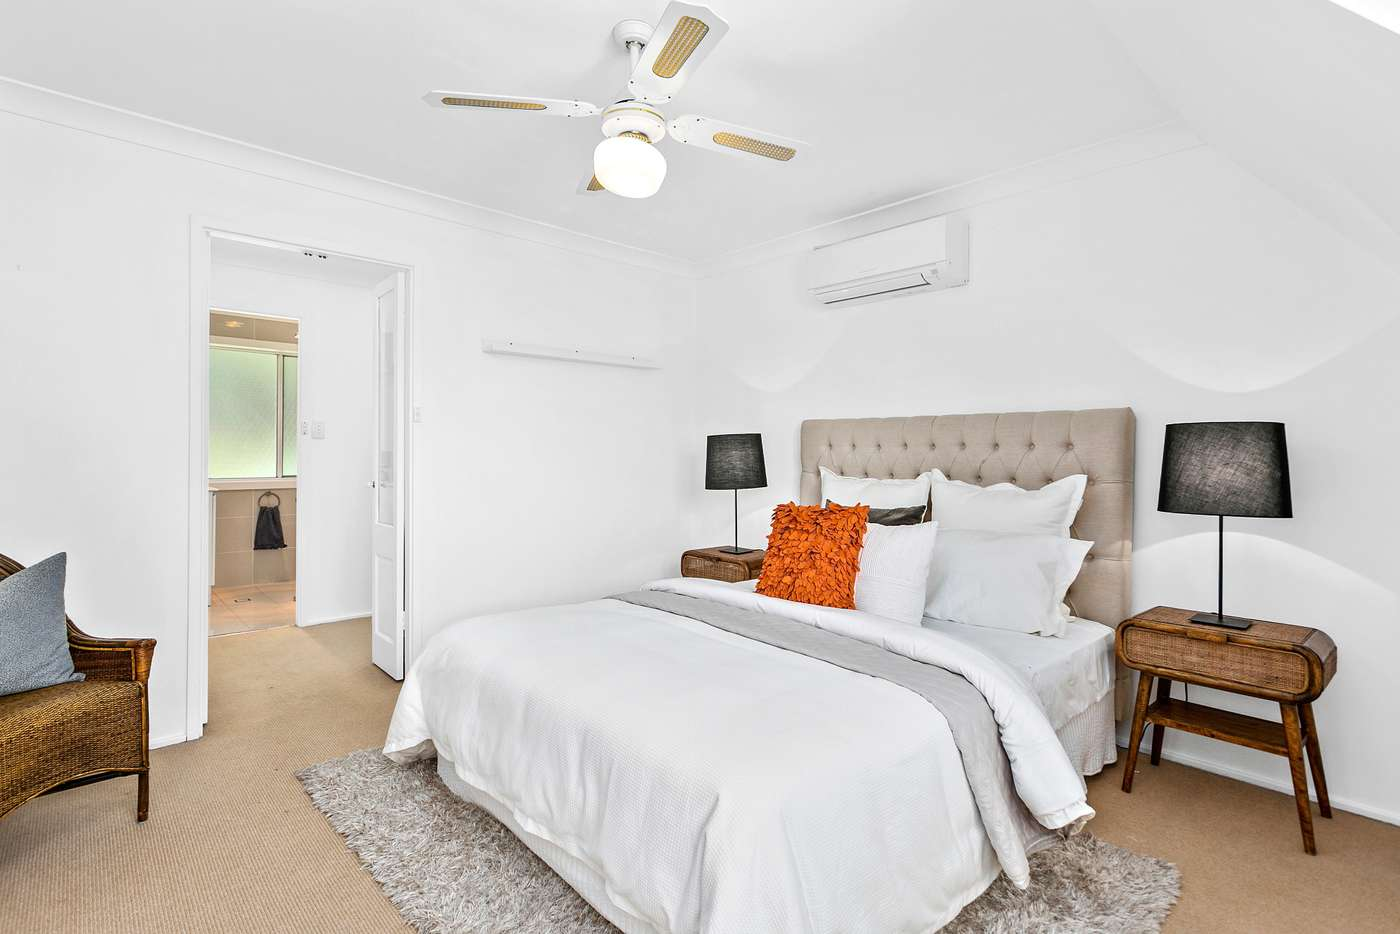 Sixth view of Homely house listing, 49 William Street, Keiraville NSW 2500